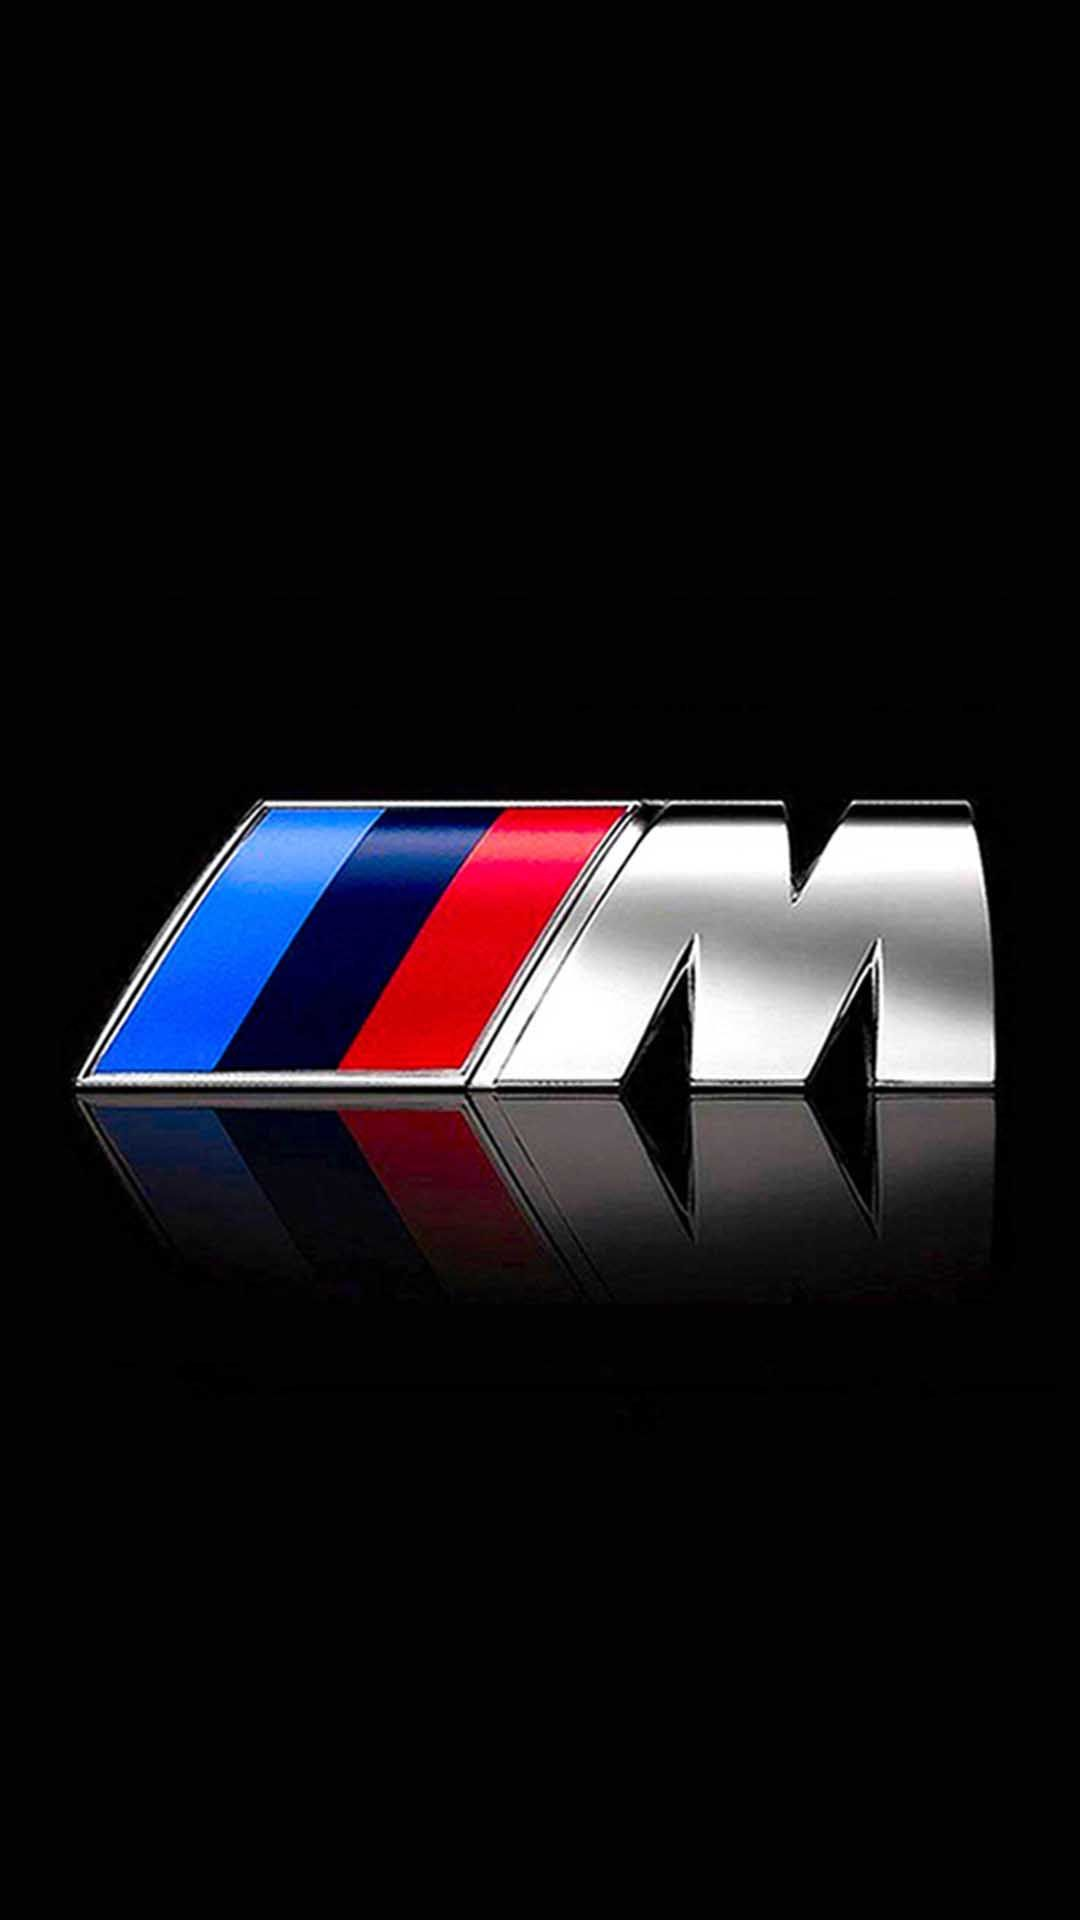 Bmw Iphone X Wallpapers Top Free Bmw Iphone X Backgrounds Wallpaperaccess